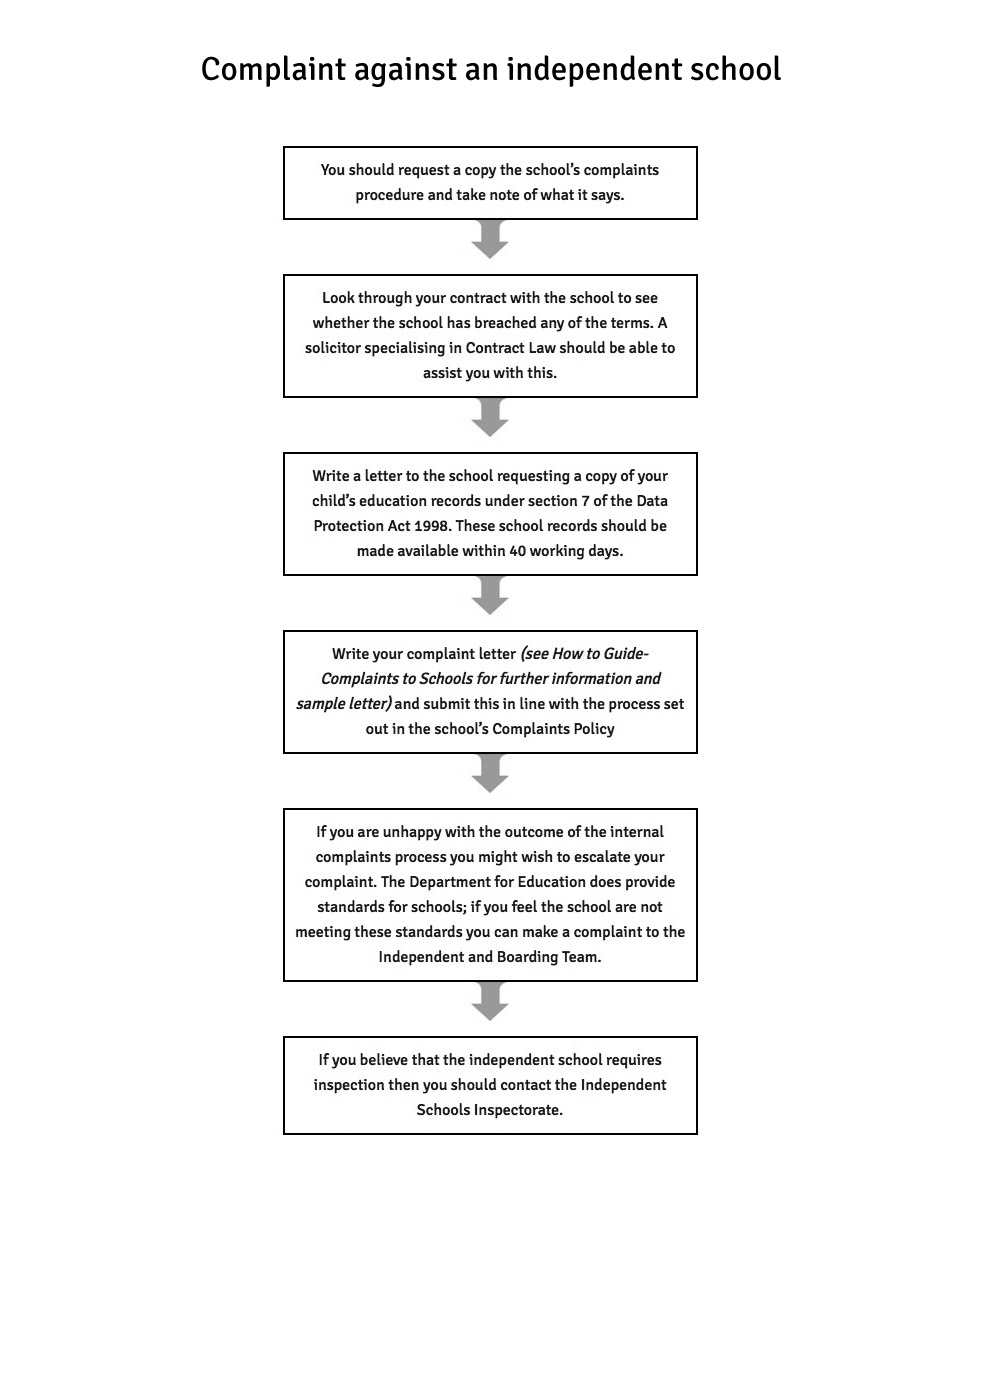 Complaints to independent schools complaint against an independent school flowchart spiritdancerdesigns Gallery